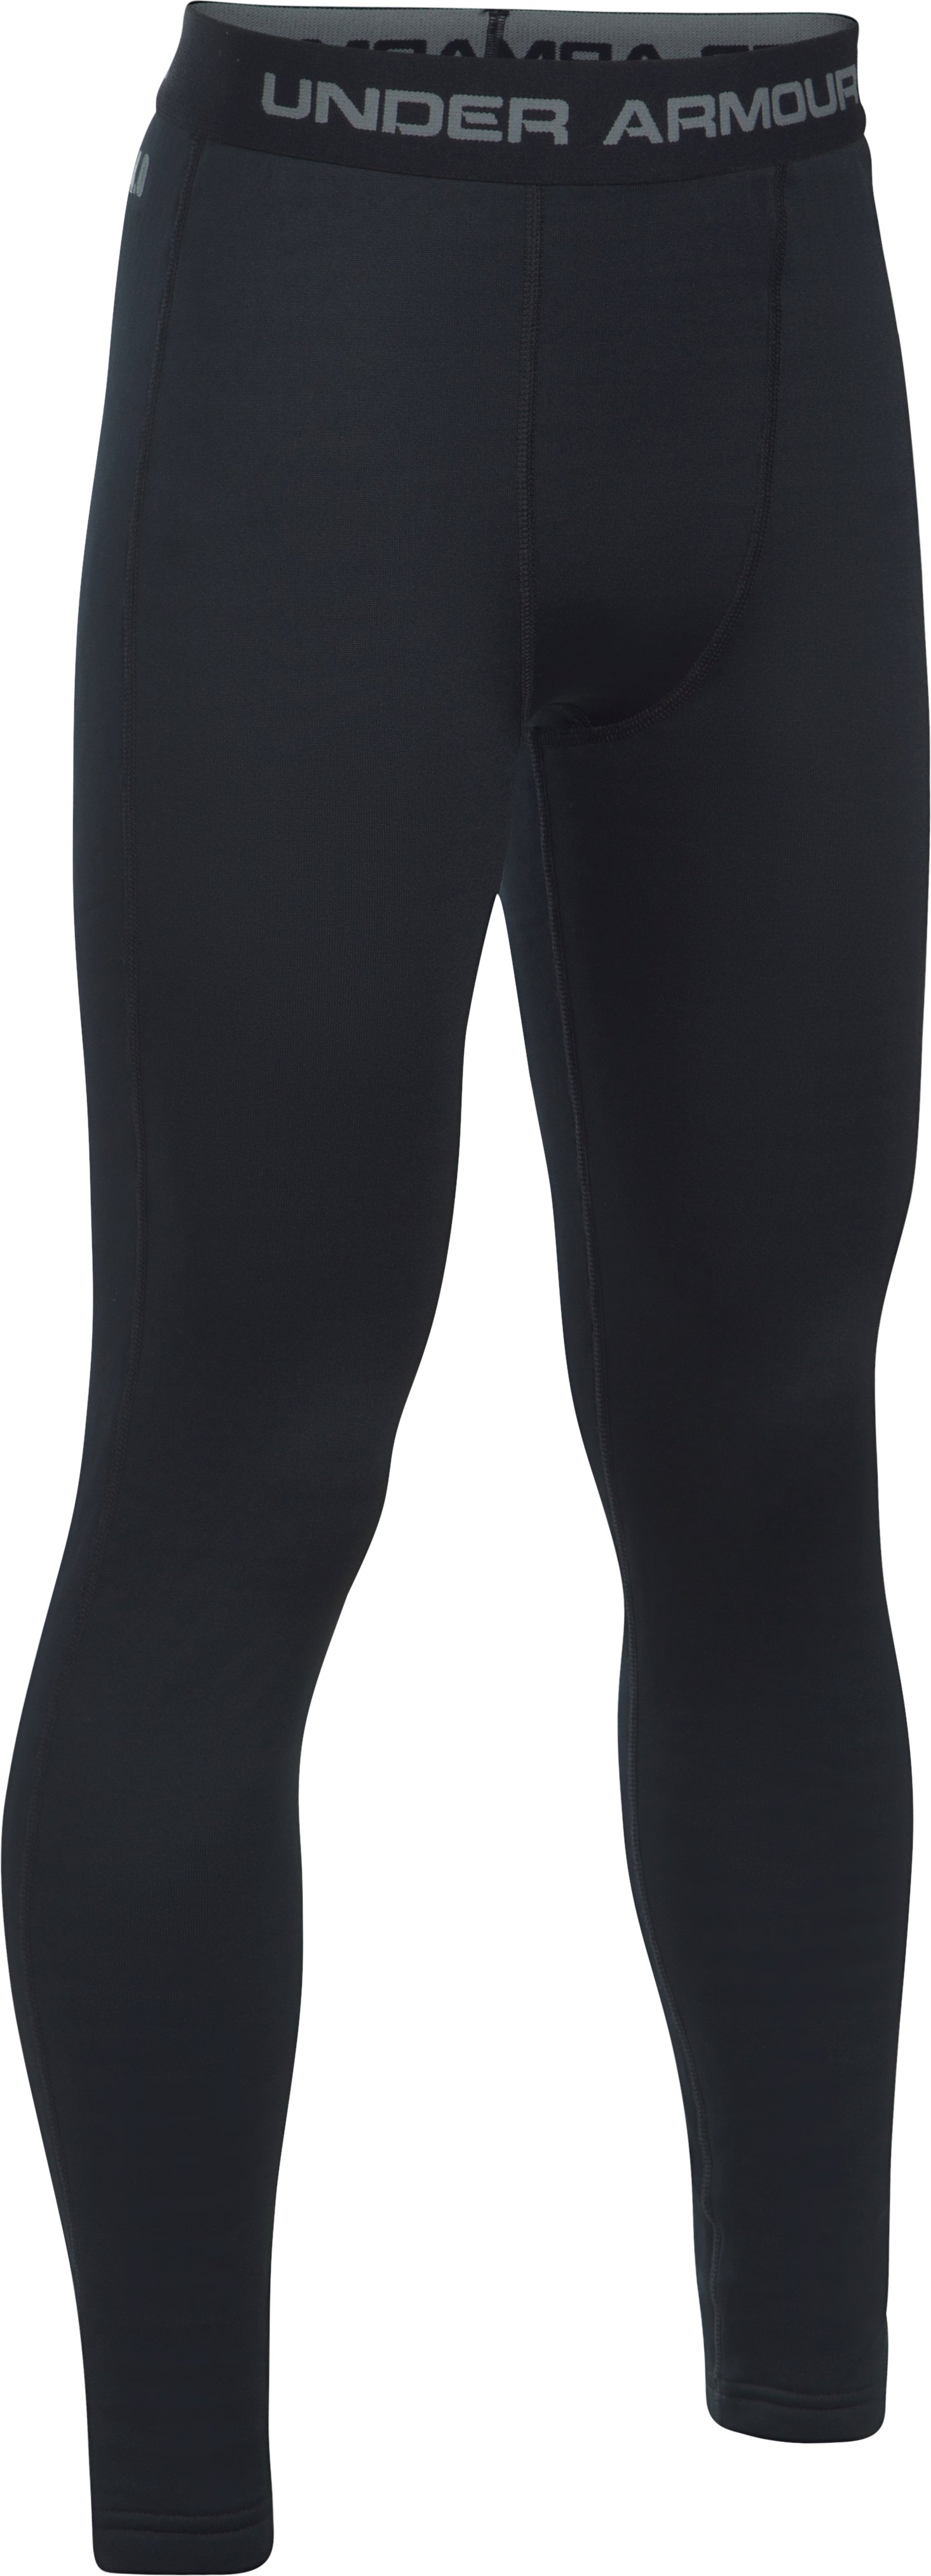 Boys' UA Base™ 4.0 Leggings, Black